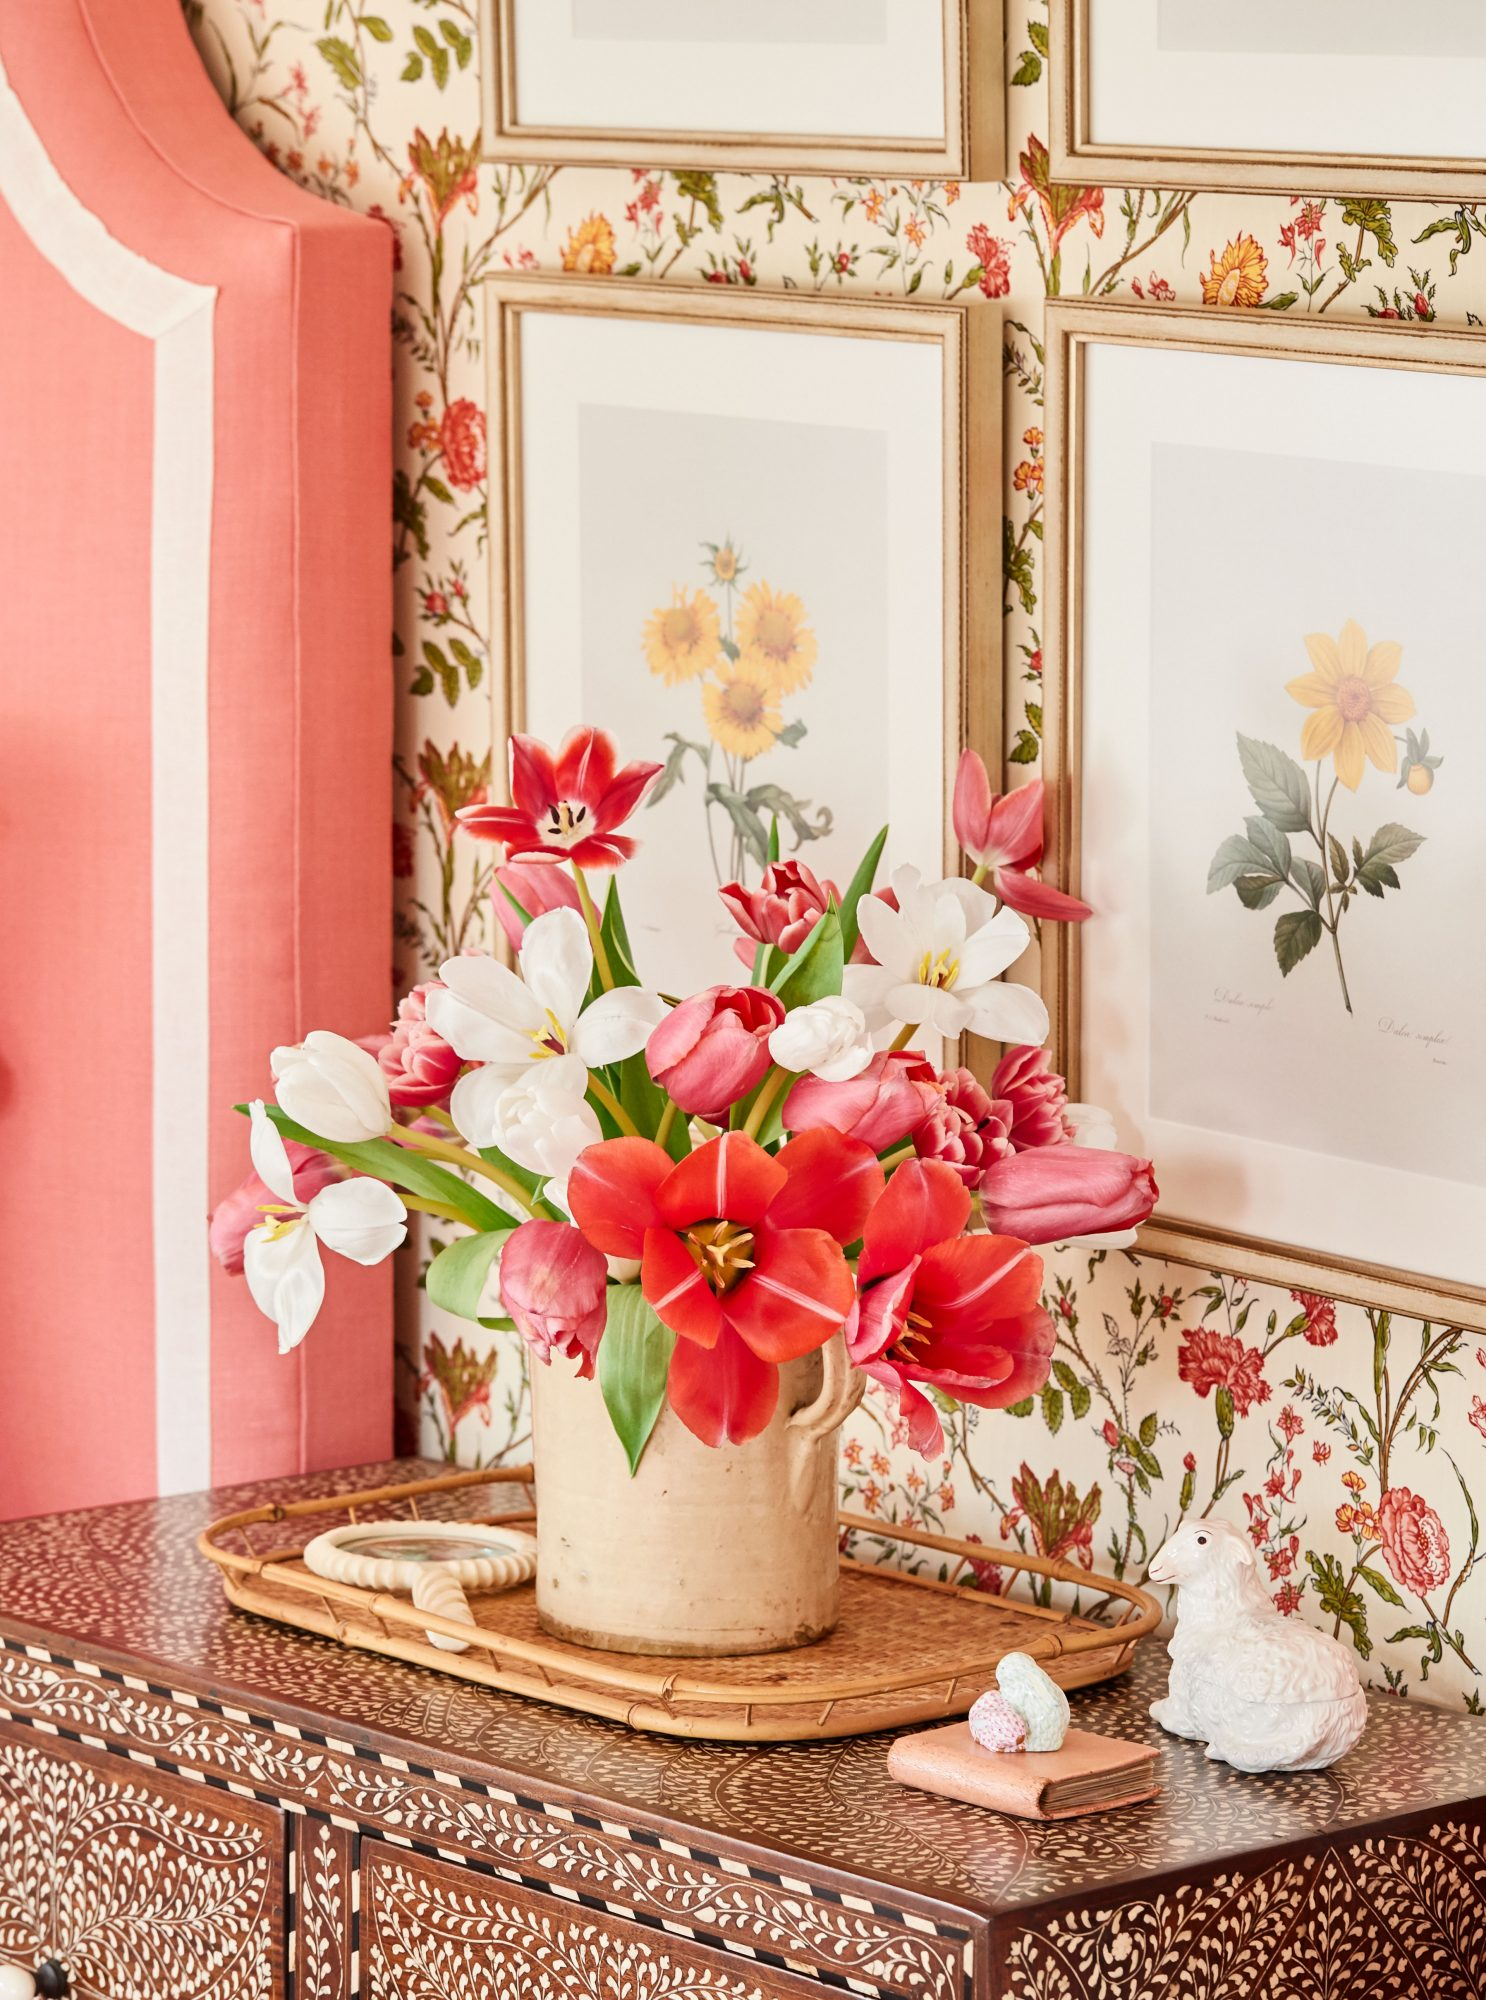 Pink and white tulip floral arrangement